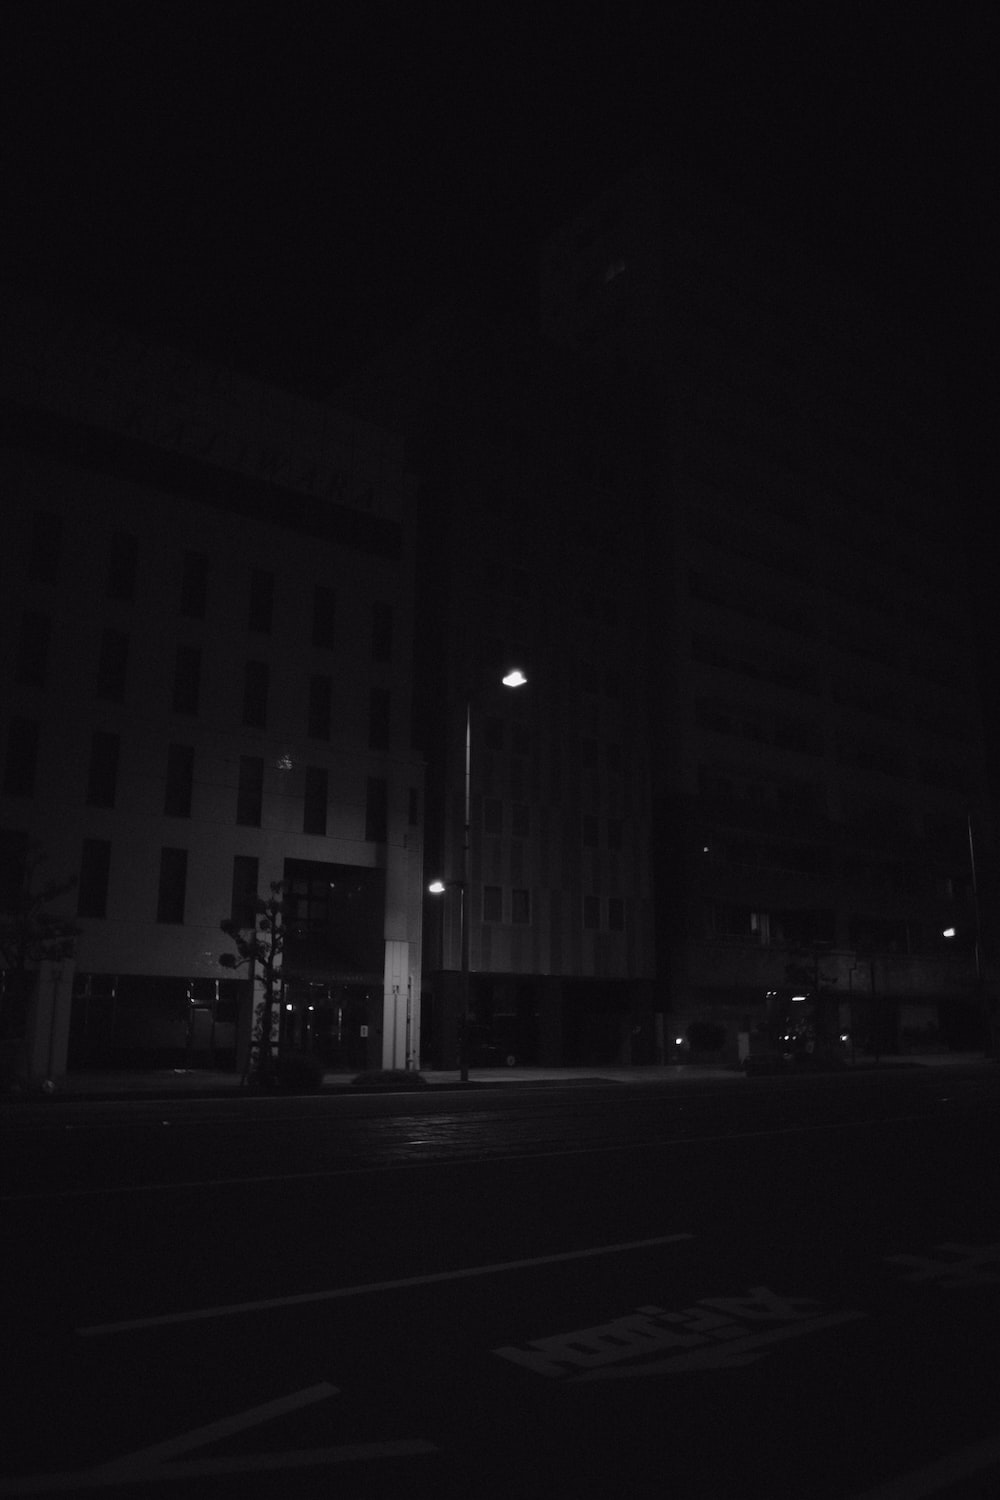 grayscale photo of city building during night time